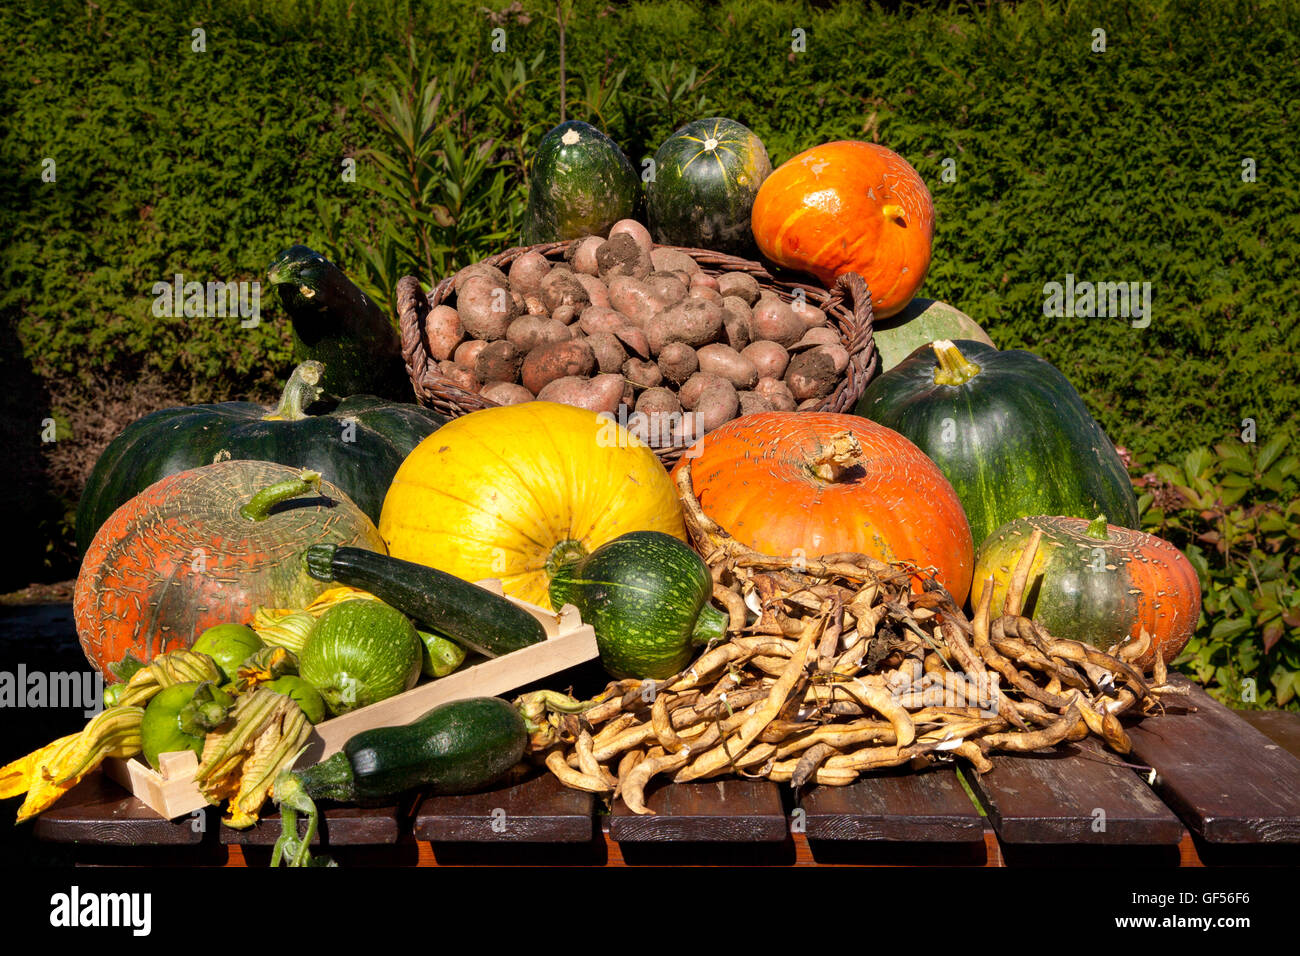 Harvested vegetables presented on a table in autumn for the thanksgiving festival - Stock Image